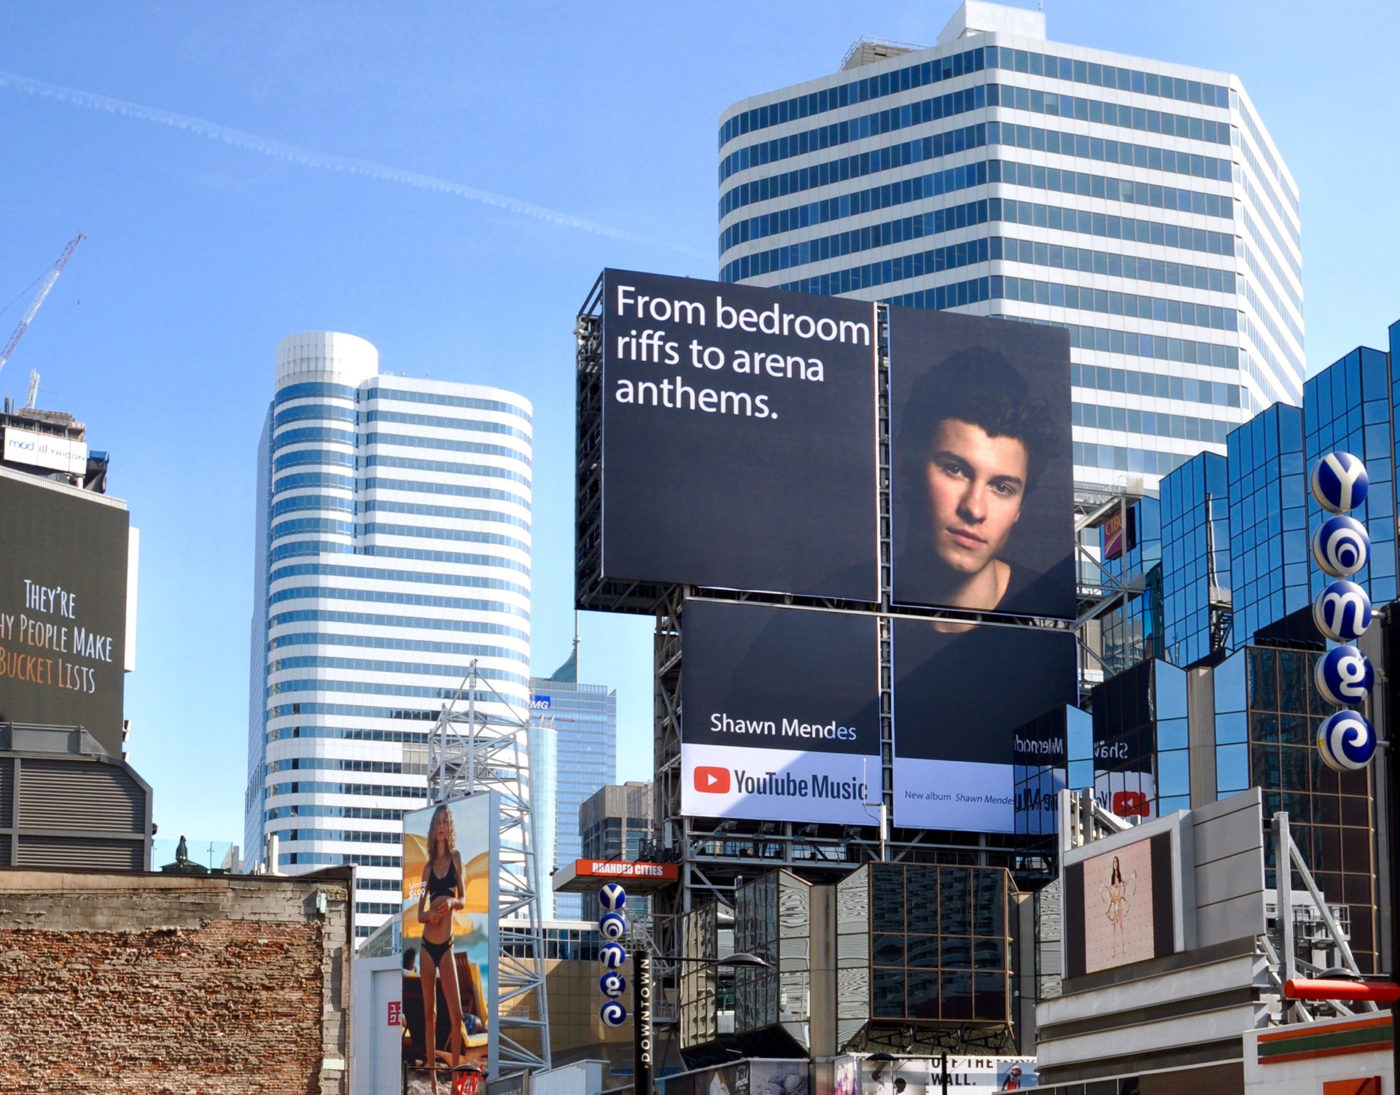 YouTube Music - Shawn Mendes - Square Yonge-Dundas– spectaculaires– domination d'AOB Tour Nord (Toronto, Ontario)